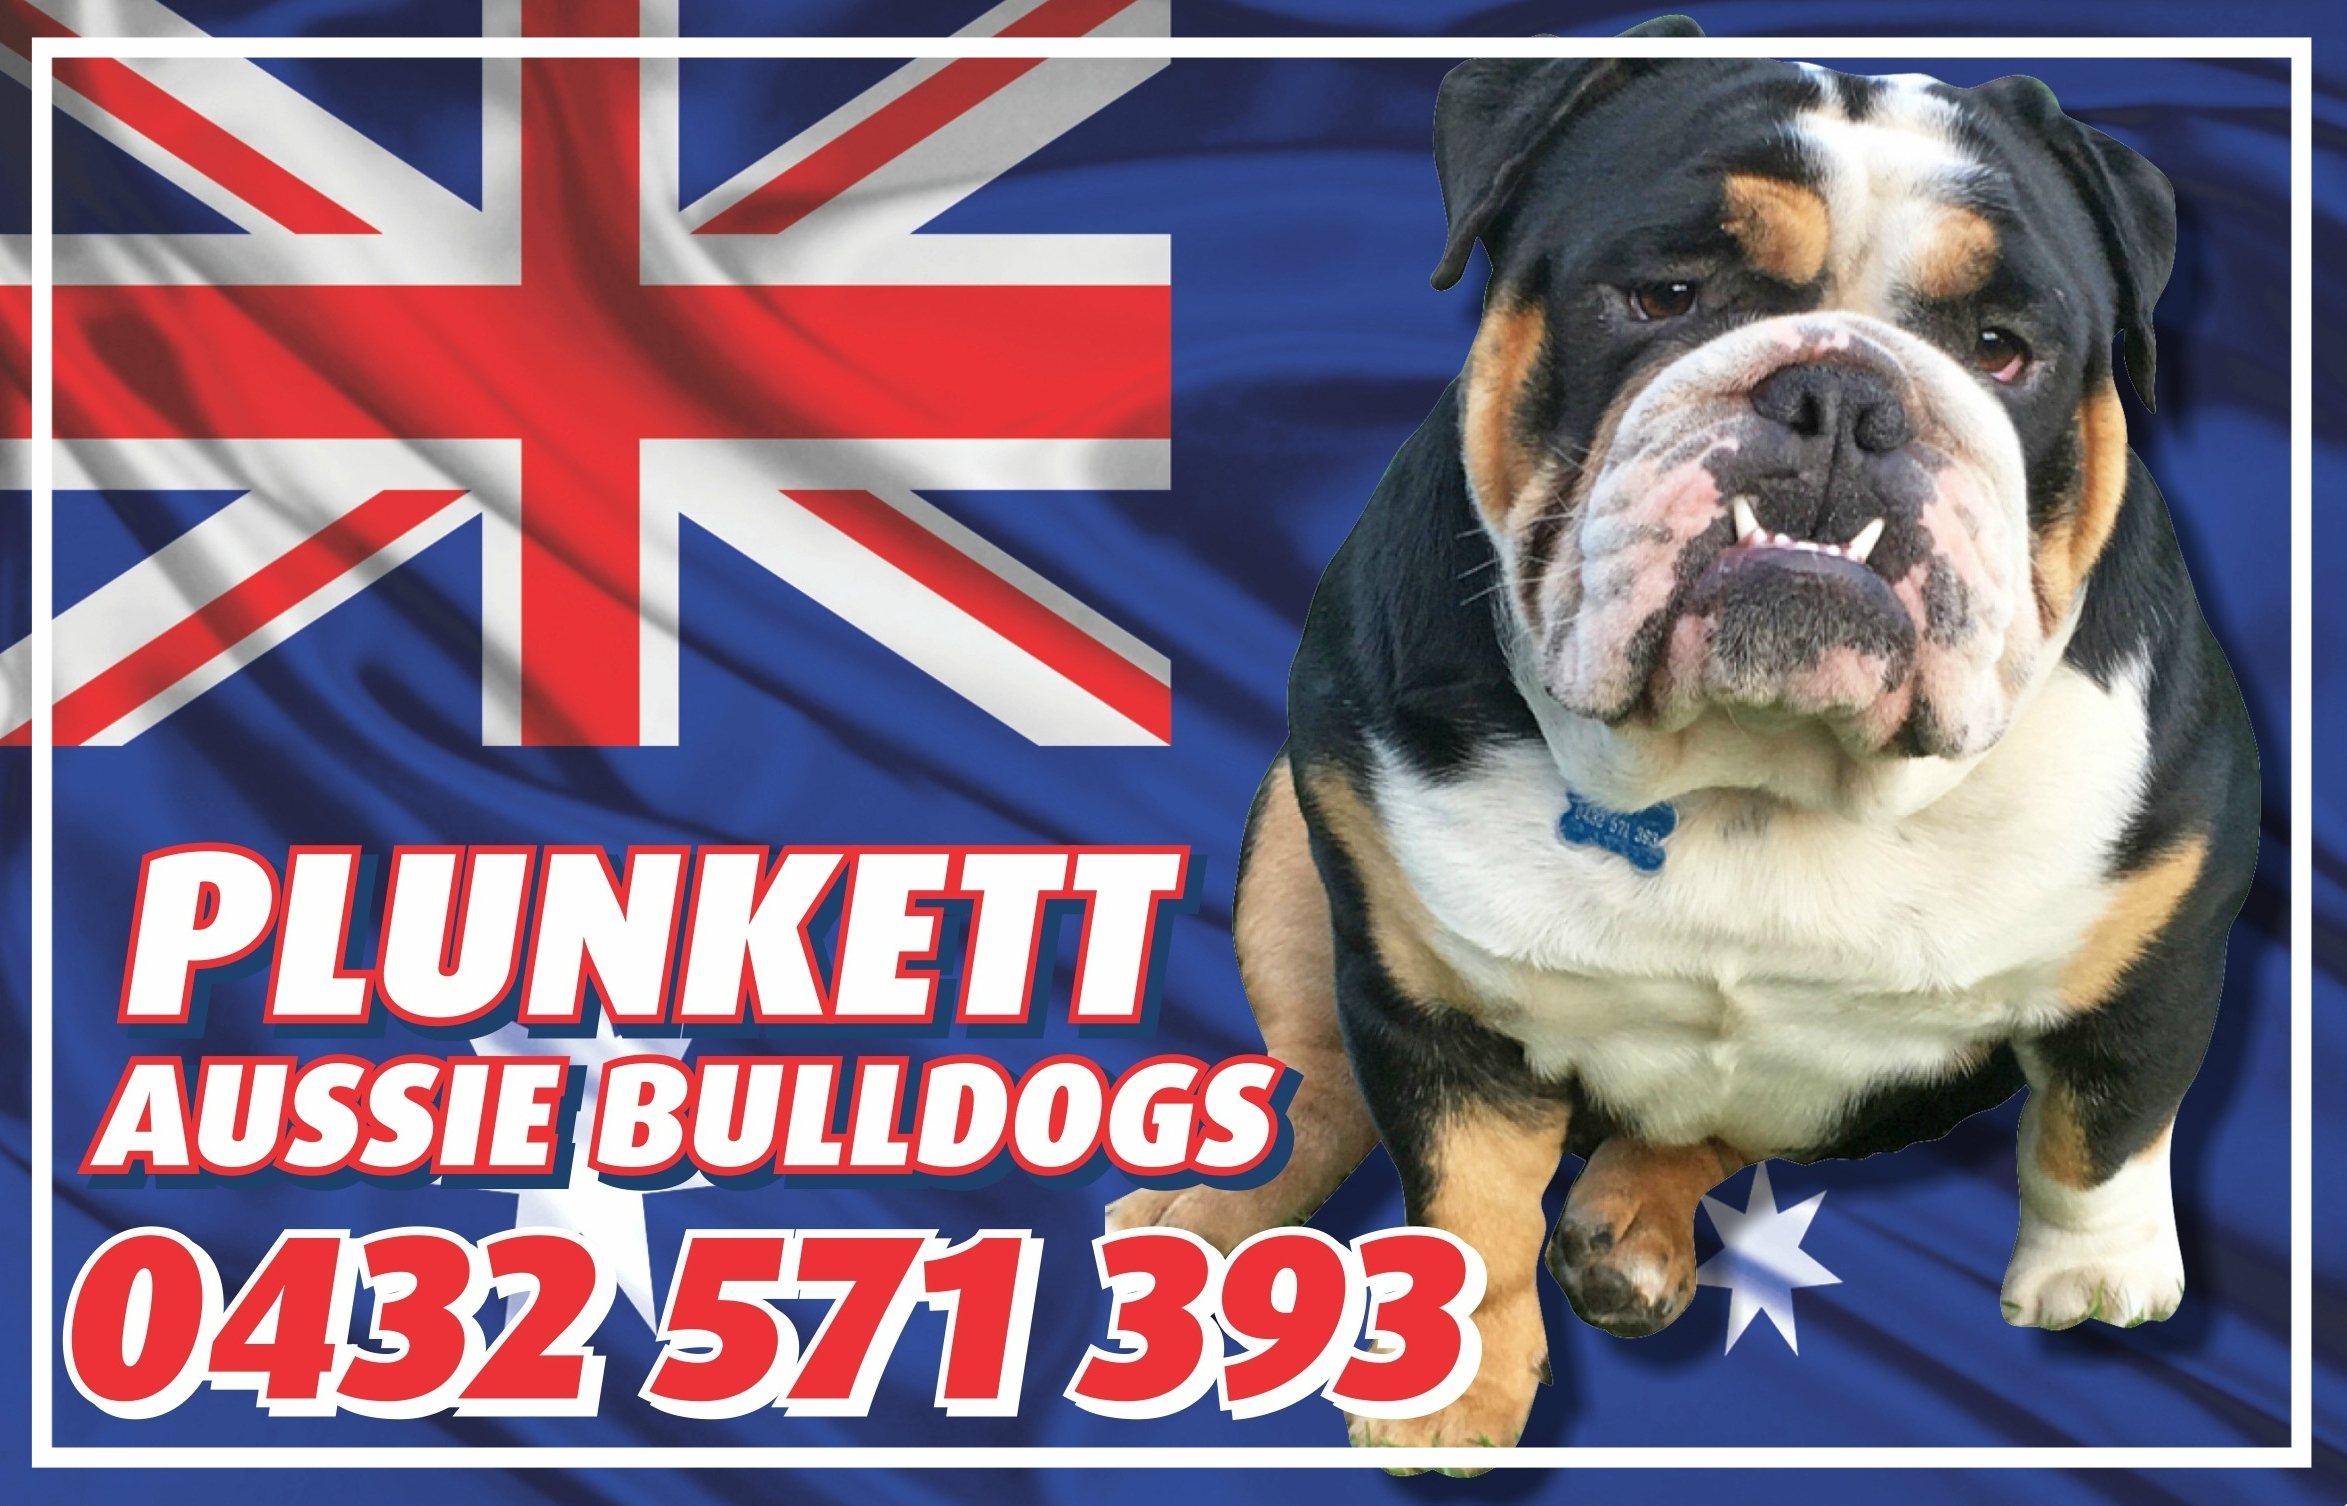 Plunkett Aussie Bulldogs - Located: MillicentPlease contact: SallyPhone: 0432 71 393eMail: salplunkett63@hotmail.com